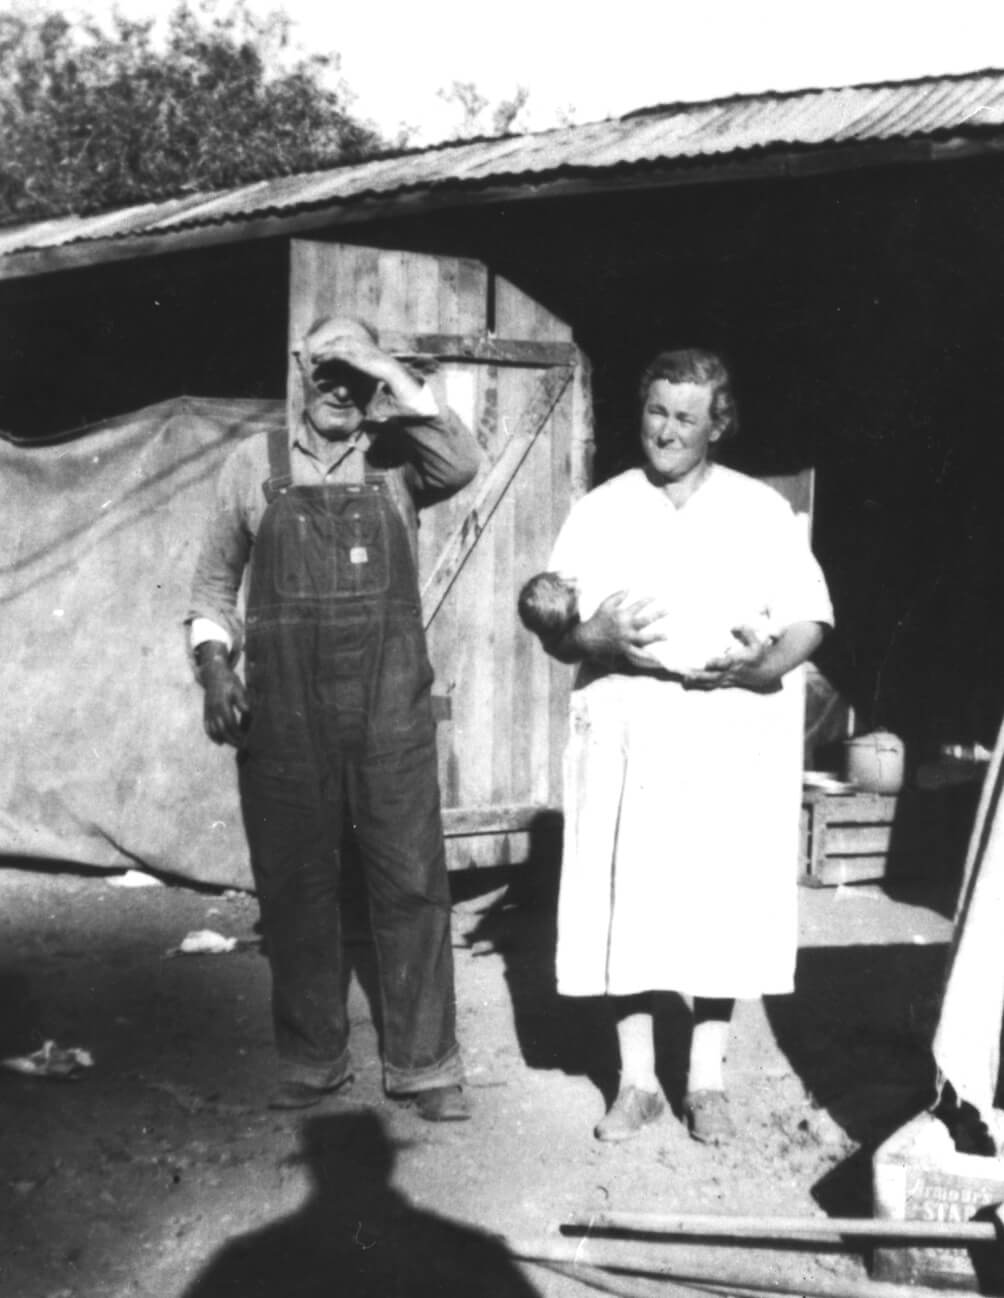 black and white photo of a man covering his eyes from the sun while a woman in a white dress holds a baby